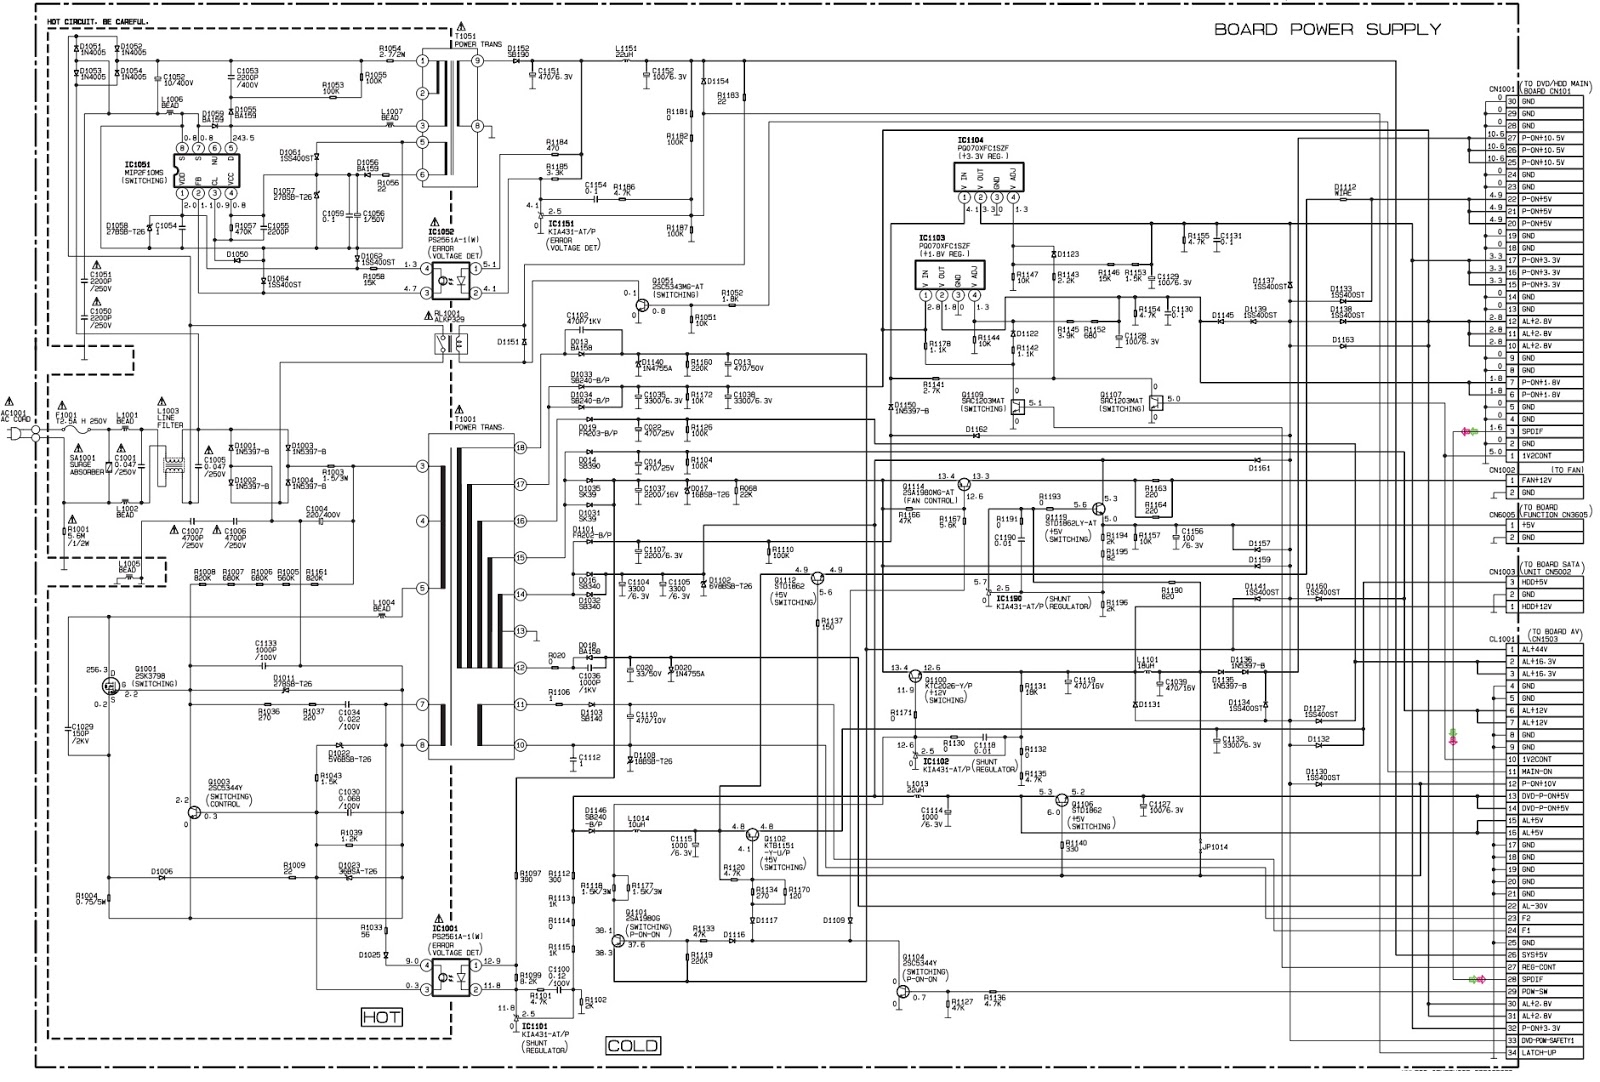 D44C7 Toshiba G7 Wiring Diagram | Digital Resources on motor diagrams, friendship bracelet diagrams, transformer diagrams, series and parallel circuits diagrams, switch diagrams, internet of things diagrams, troubleshooting diagrams, lighting diagrams, electrical diagrams, sincgars radio configurations diagrams, battery diagrams, led circuit diagrams, smart car diagrams, engine diagrams, pinout diagrams, hvac diagrams, honda motorcycle repair diagrams, electronic circuit diagrams, gmc fuse box diagrams,